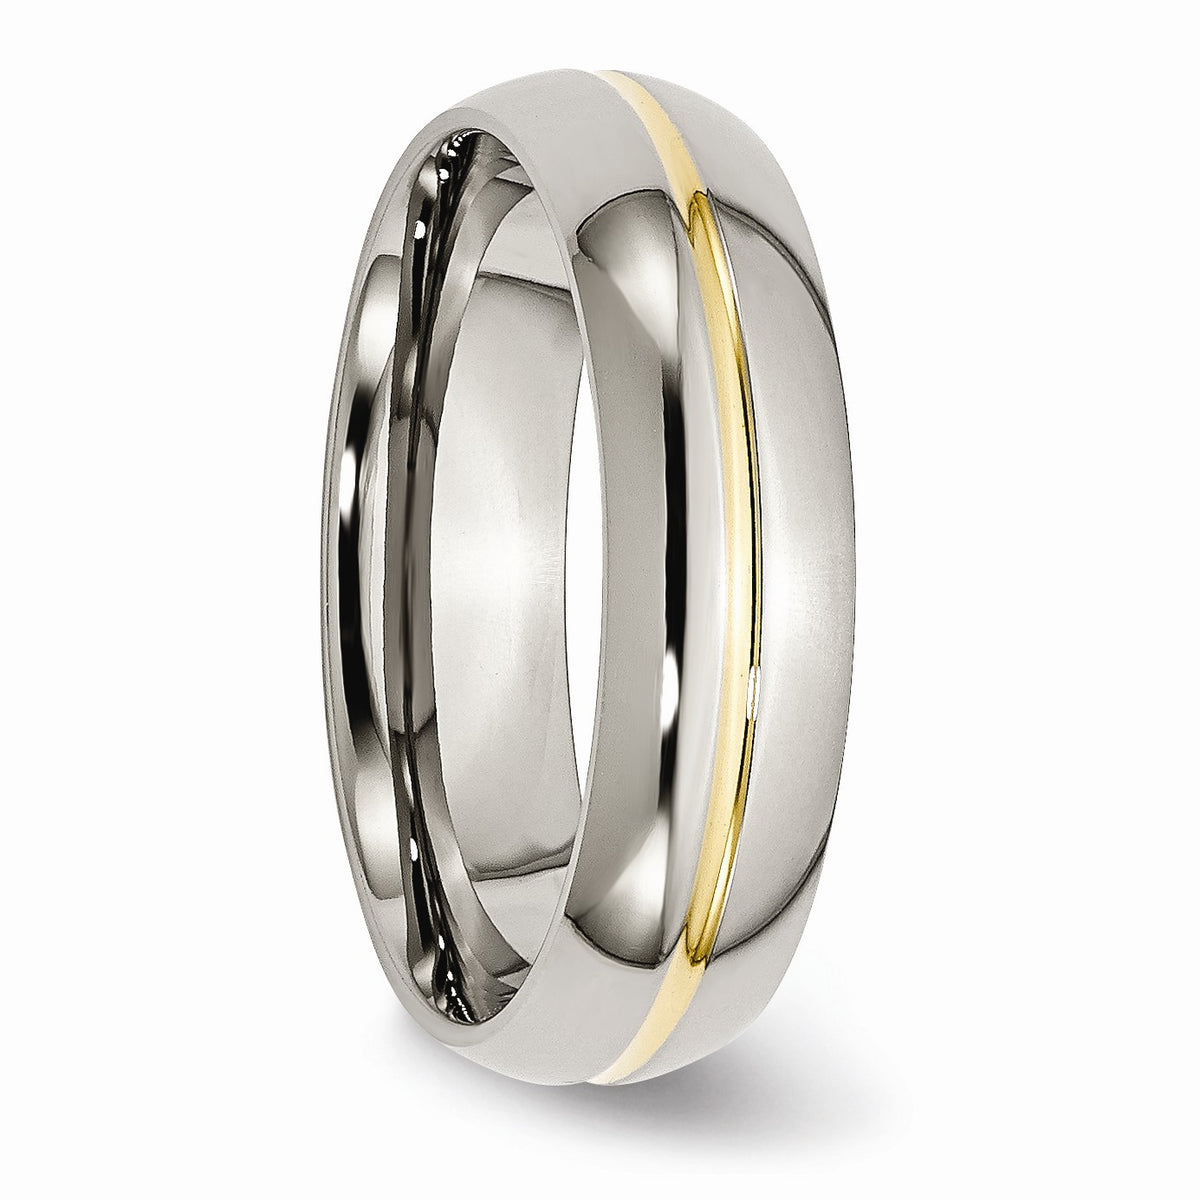 Alternate view of the Titanium and Gold Tone, 6mm Grooved Unisex Comfort Fit Band by The Black Bow Jewelry Co.